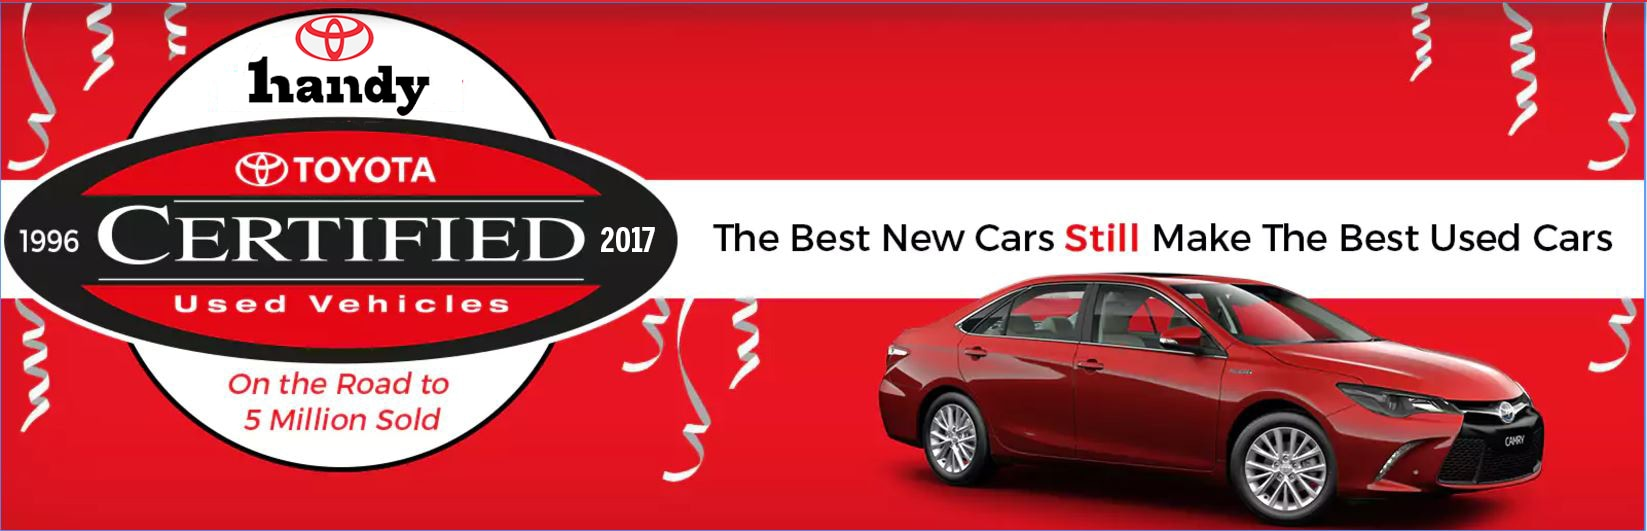 Used Vehicles Handy Toyota St Albans Vt Toyota Serving